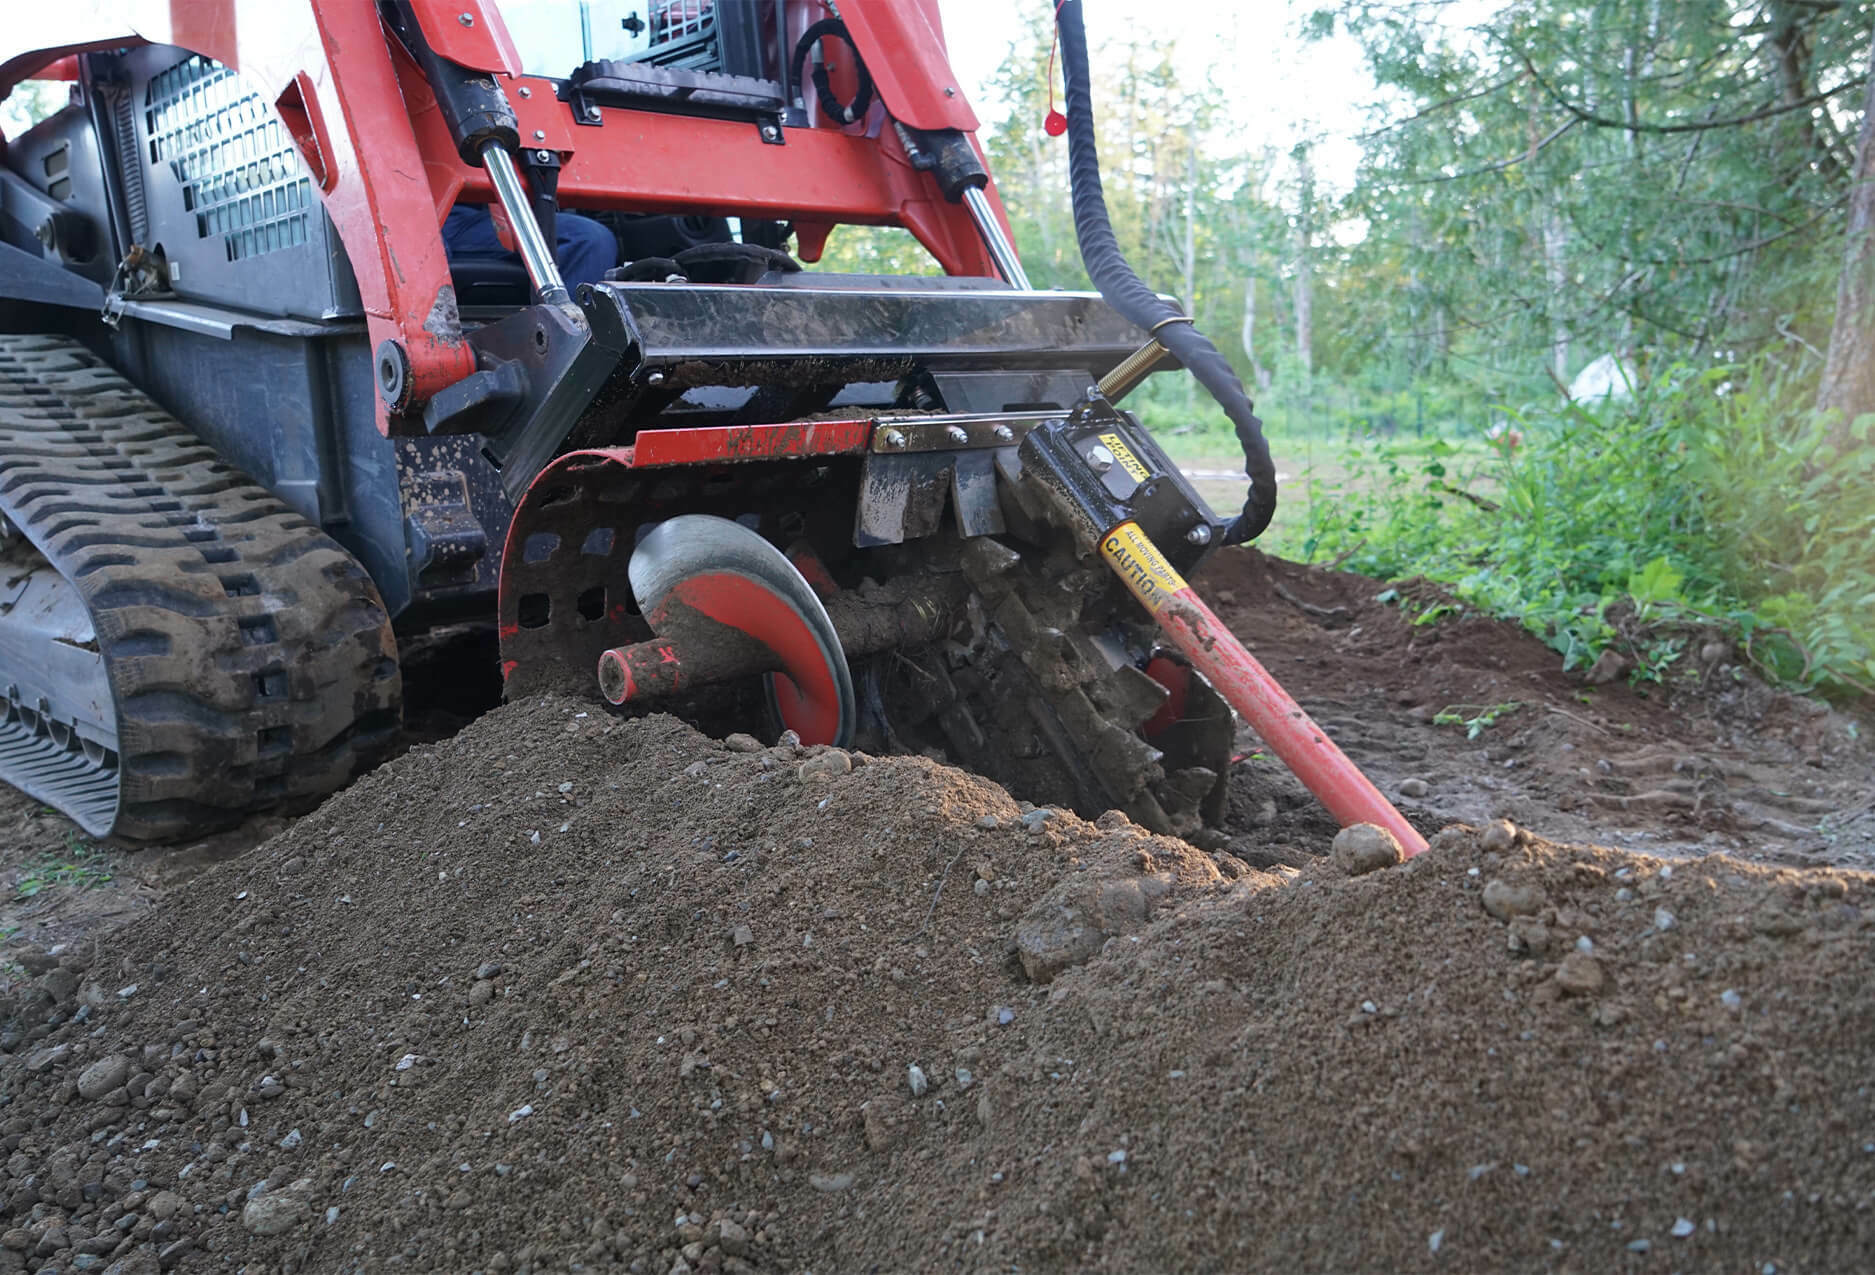 Discharge auger leaves the dirt conveniently to the side of the trench, making back-filling simple and easy.